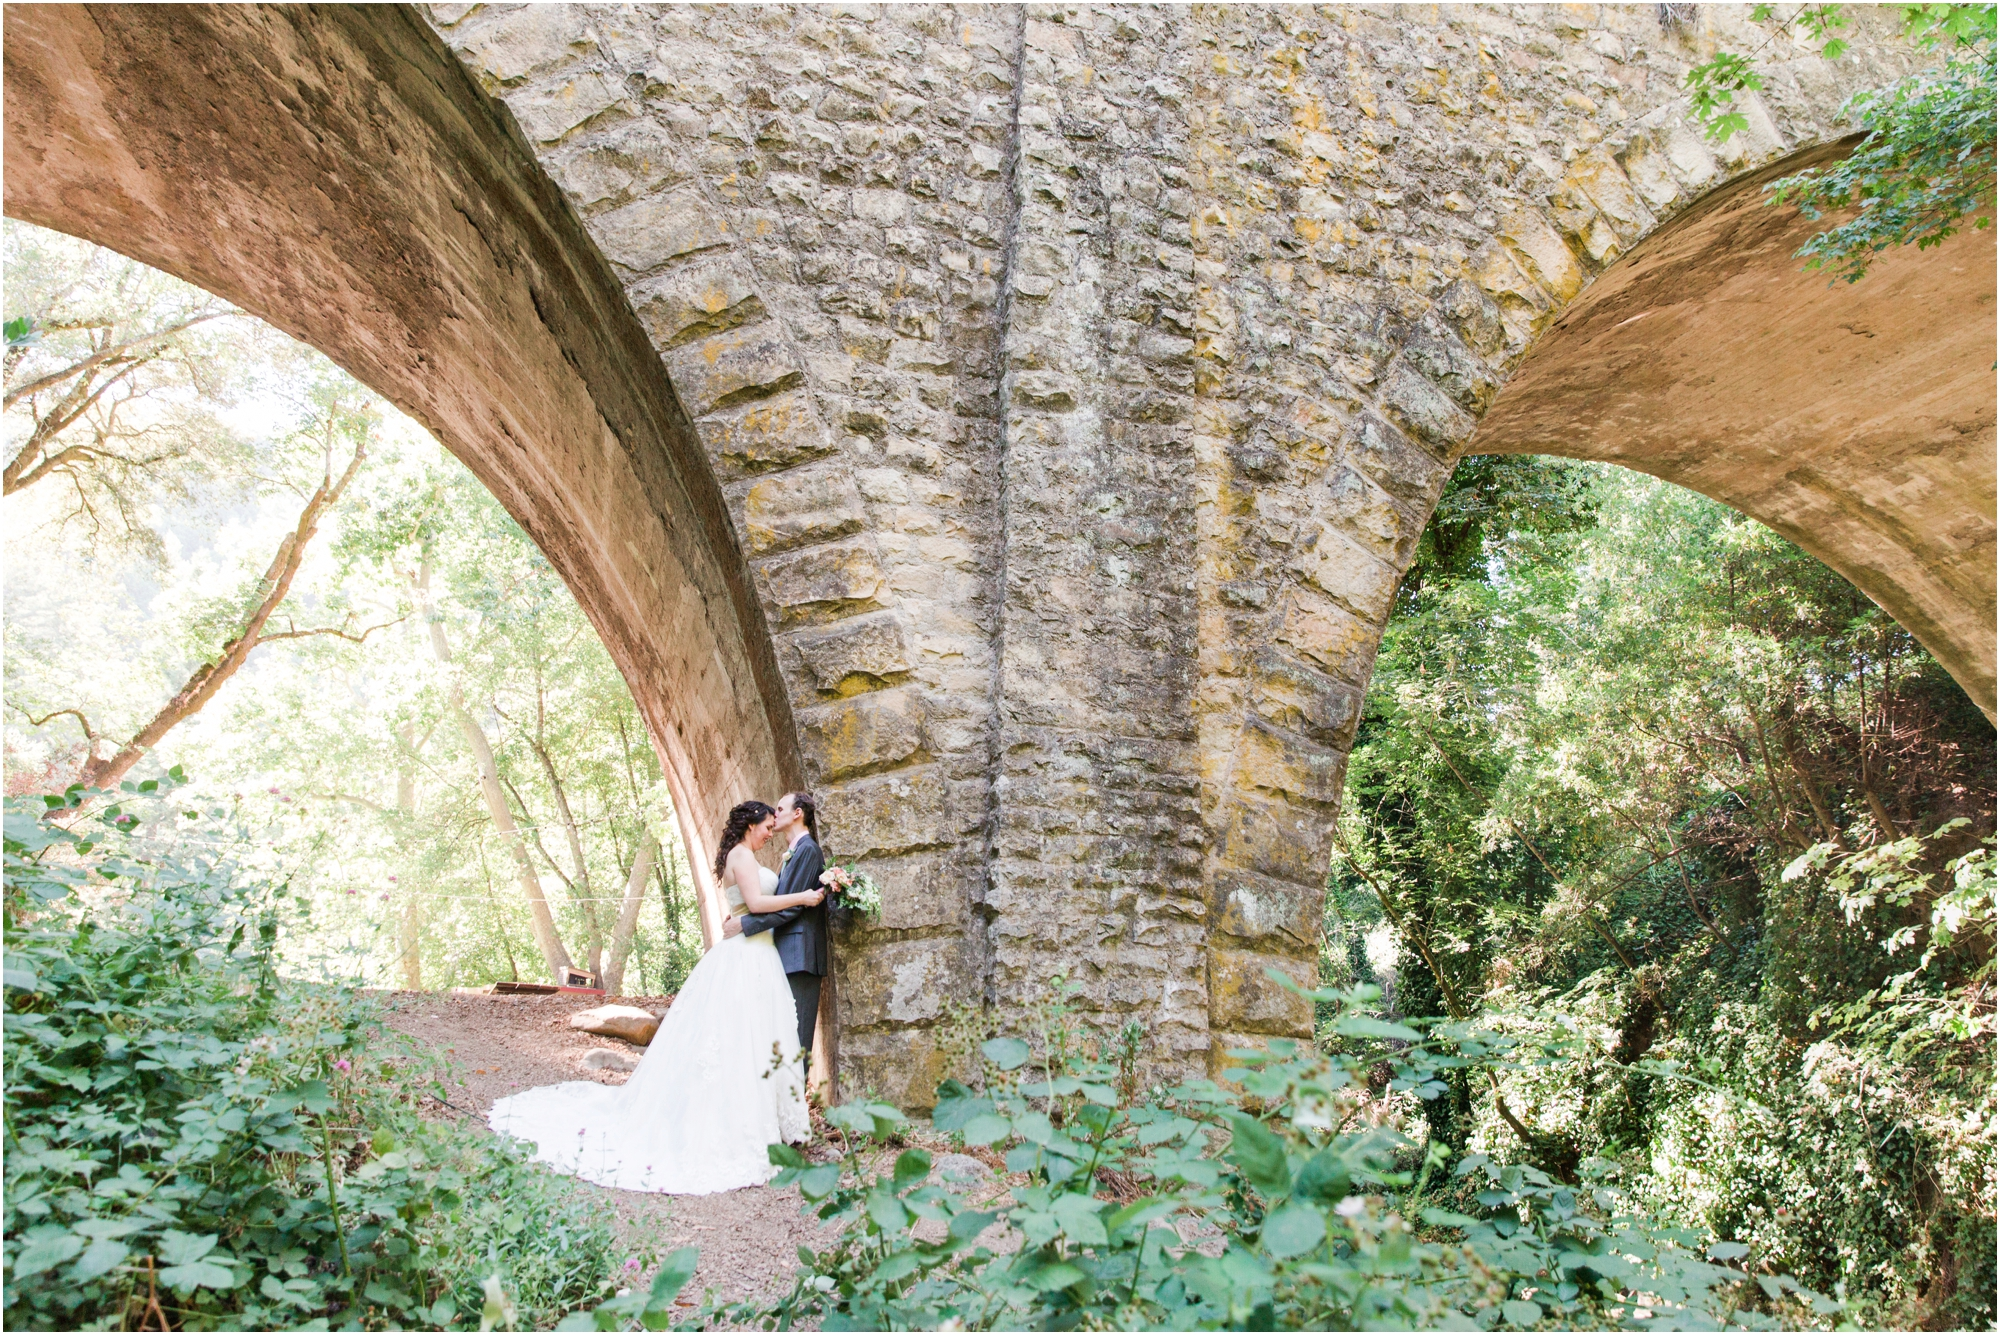 Saratoga Springs wedding pictures by Briana Calderon Photography_1833.jpg